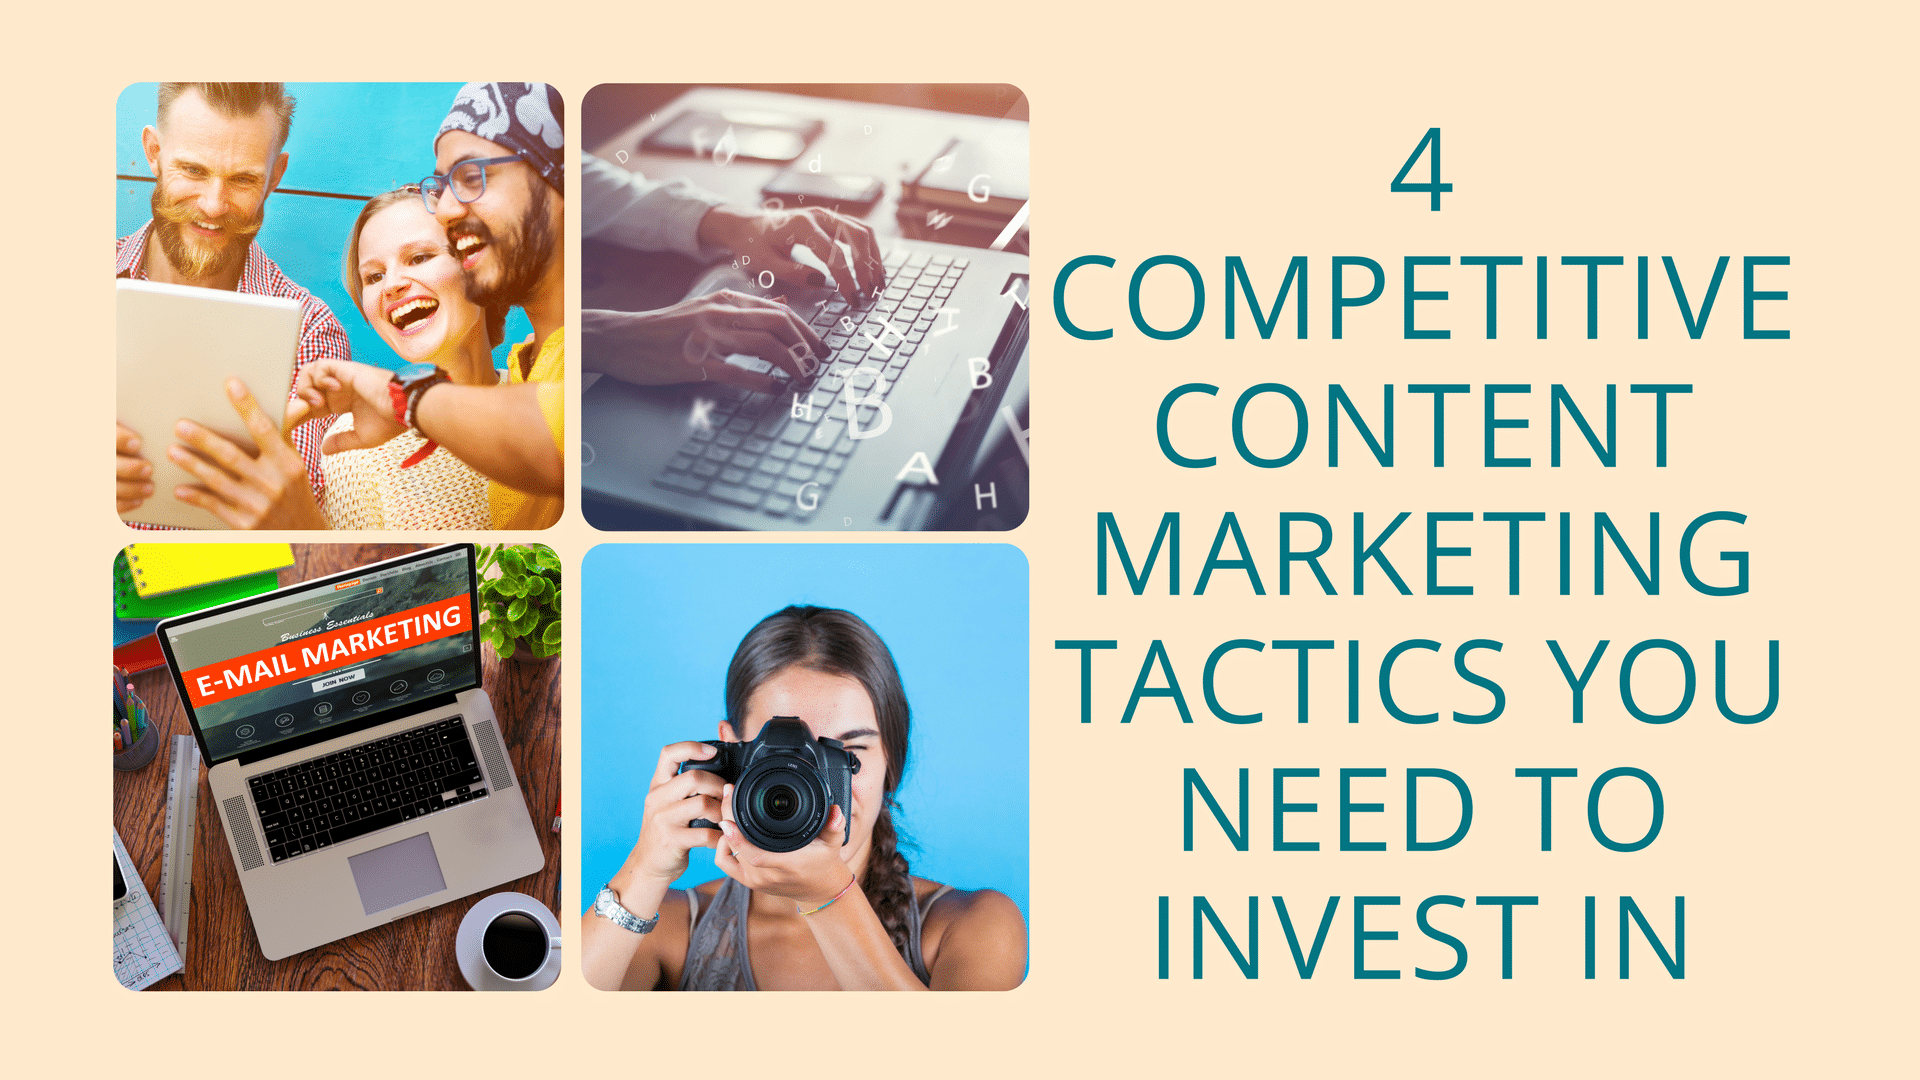 4 Competitive Content Marketing Tactics You Need To Invest In